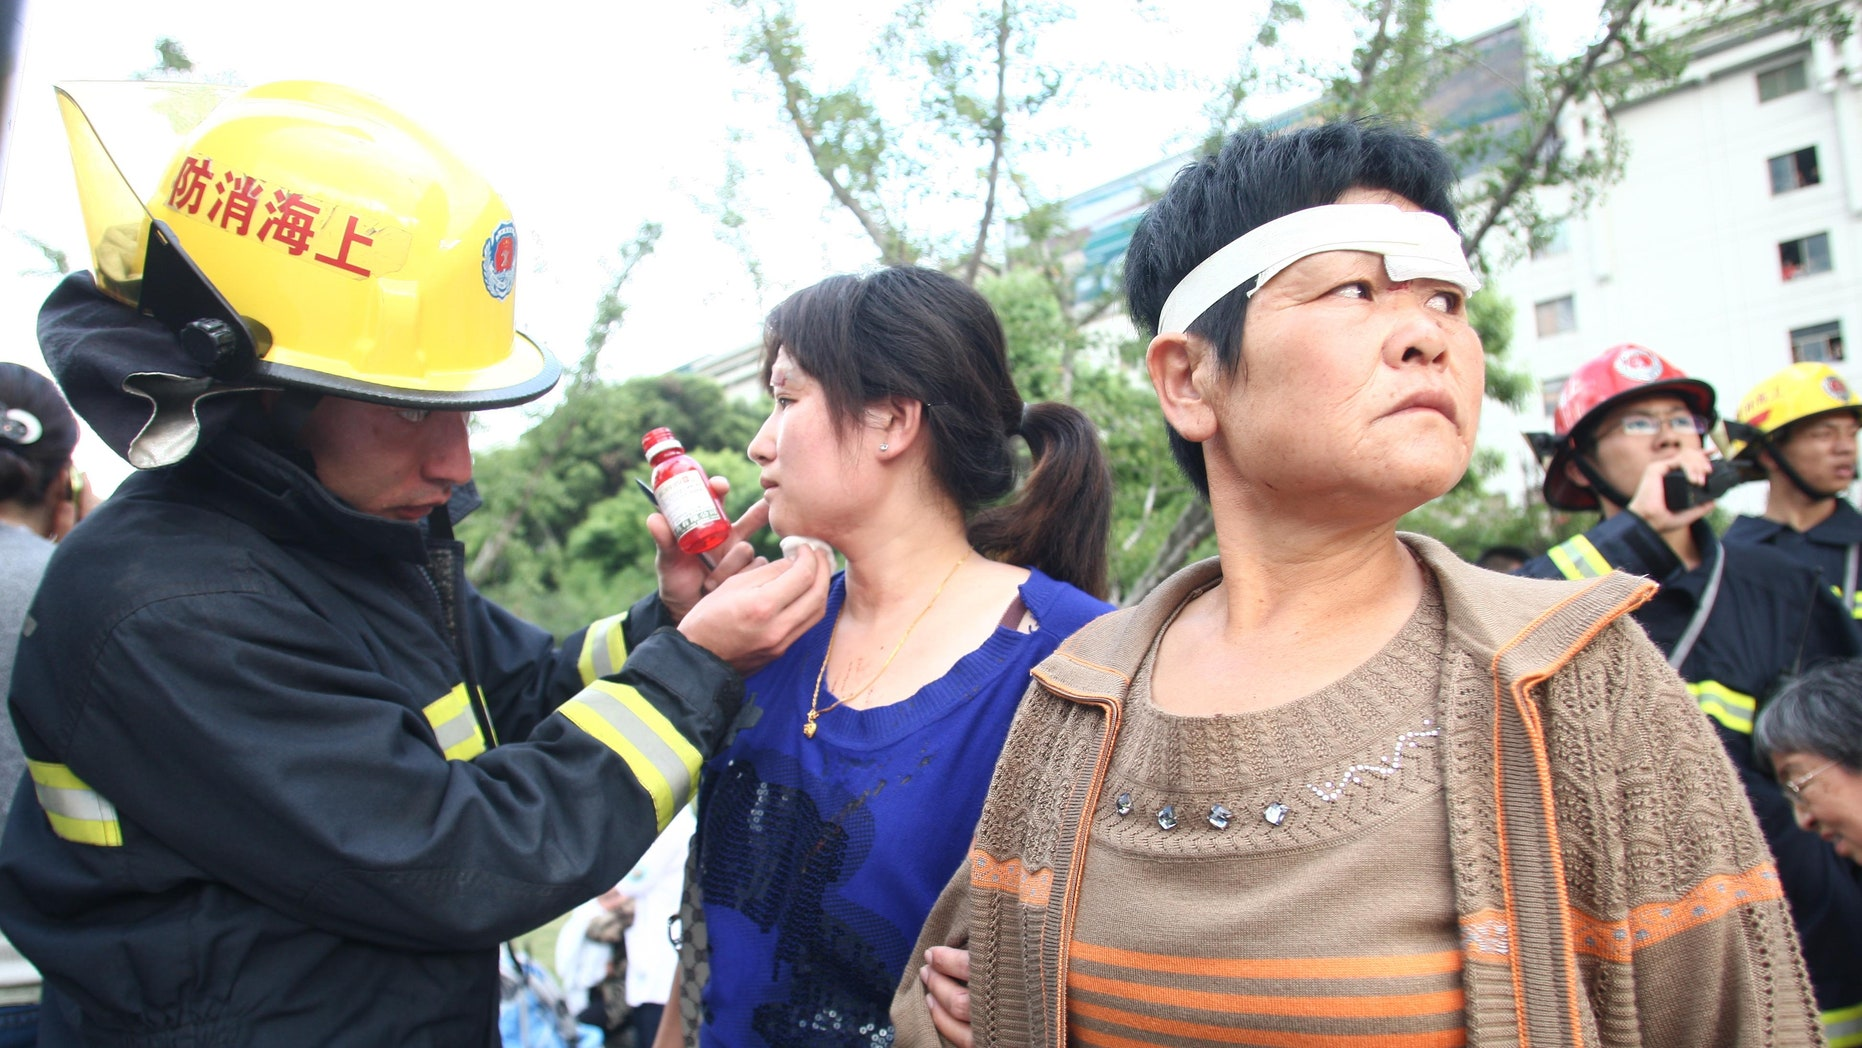 September 27: A rescue worker tends to passengers injured after a subway train accident in Shanghai.